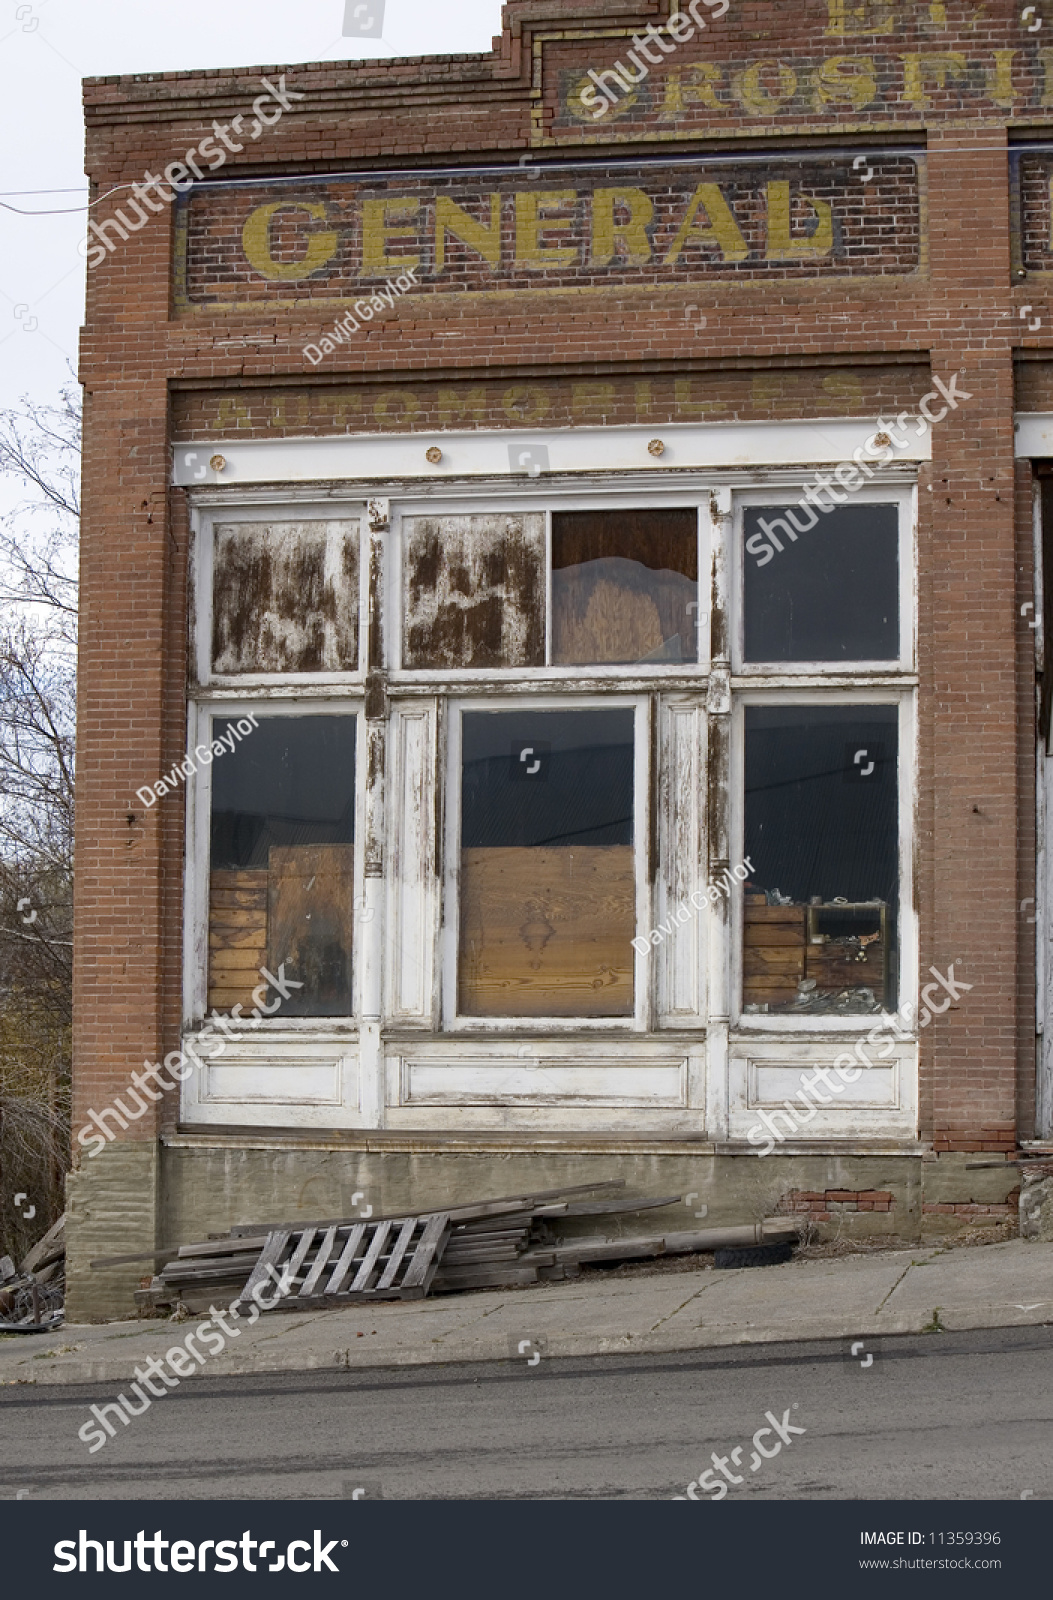 old general store front - photo #32